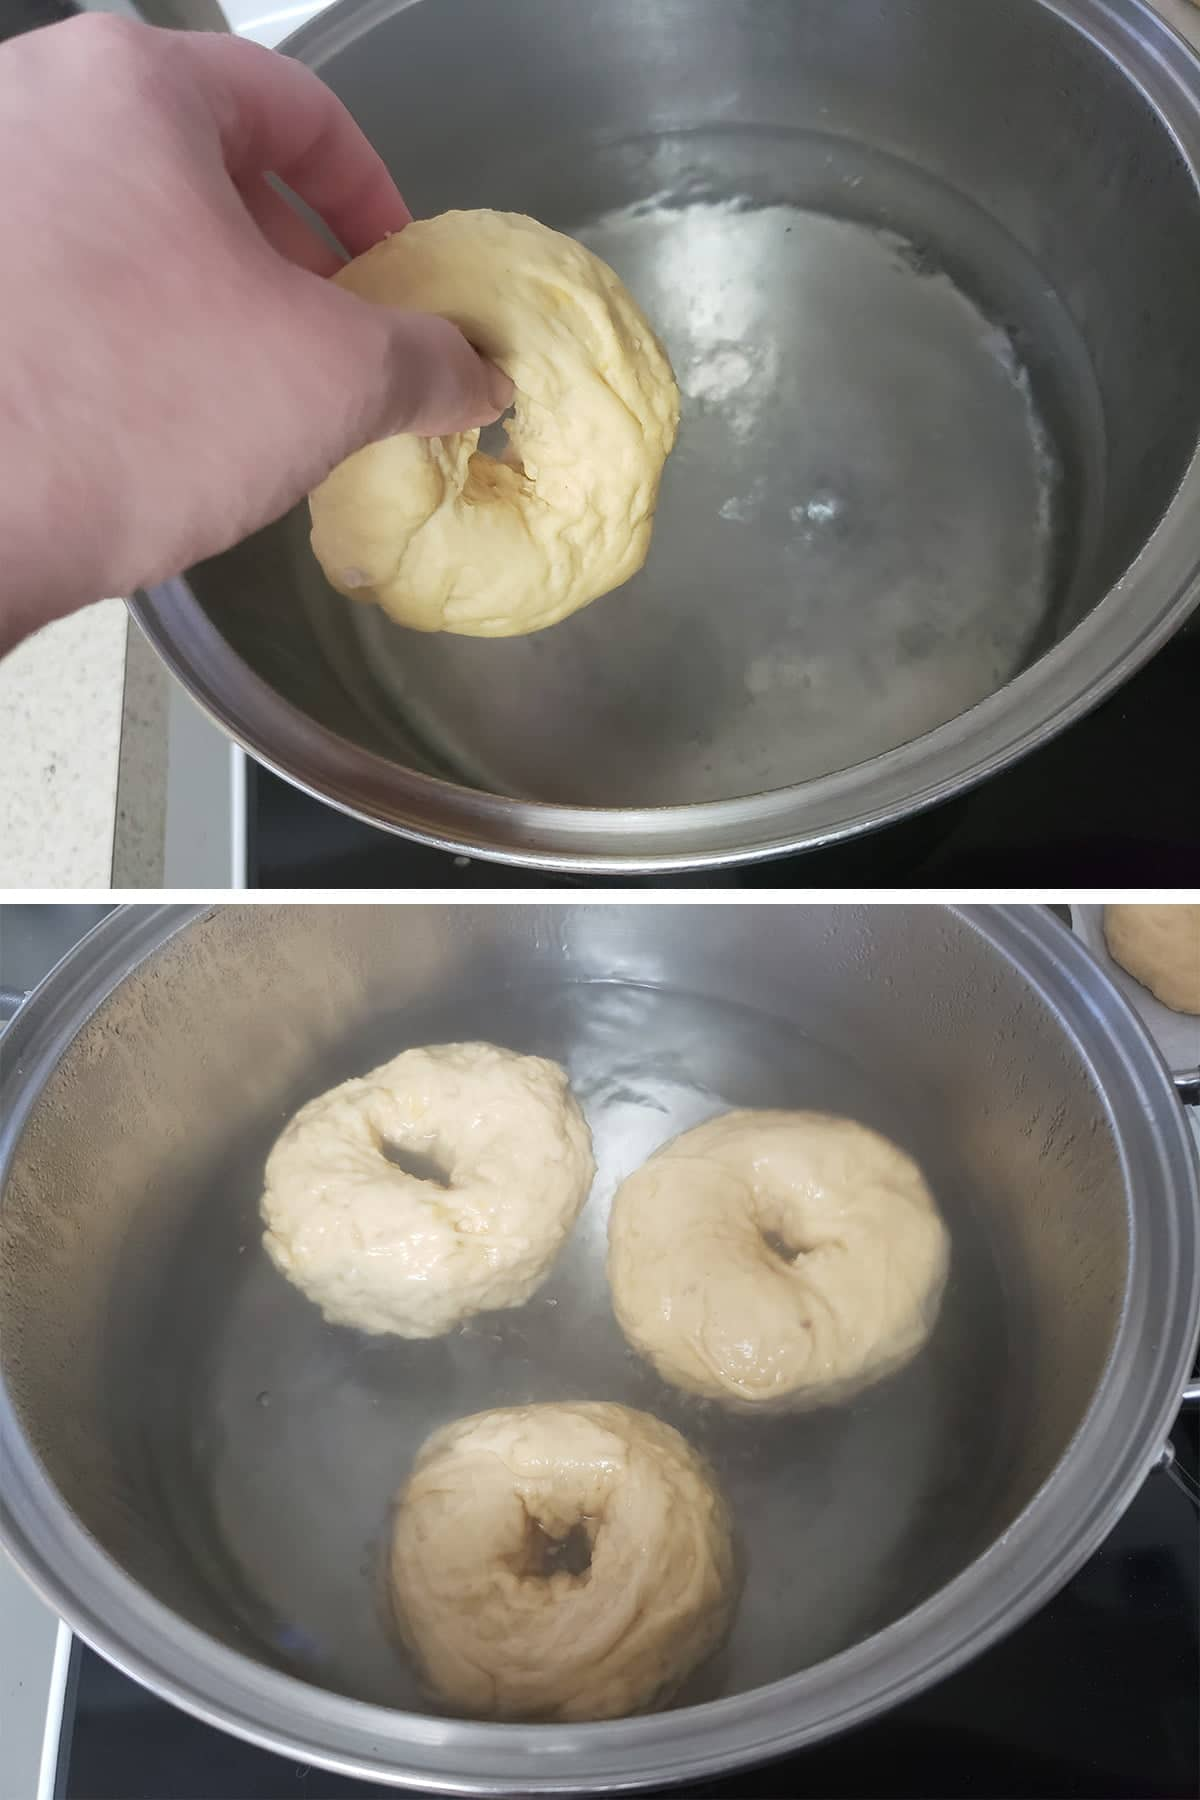 A two part compilation image showing a bagel being added to boiling water, and 3 bagels floating in a pot of boiling water.